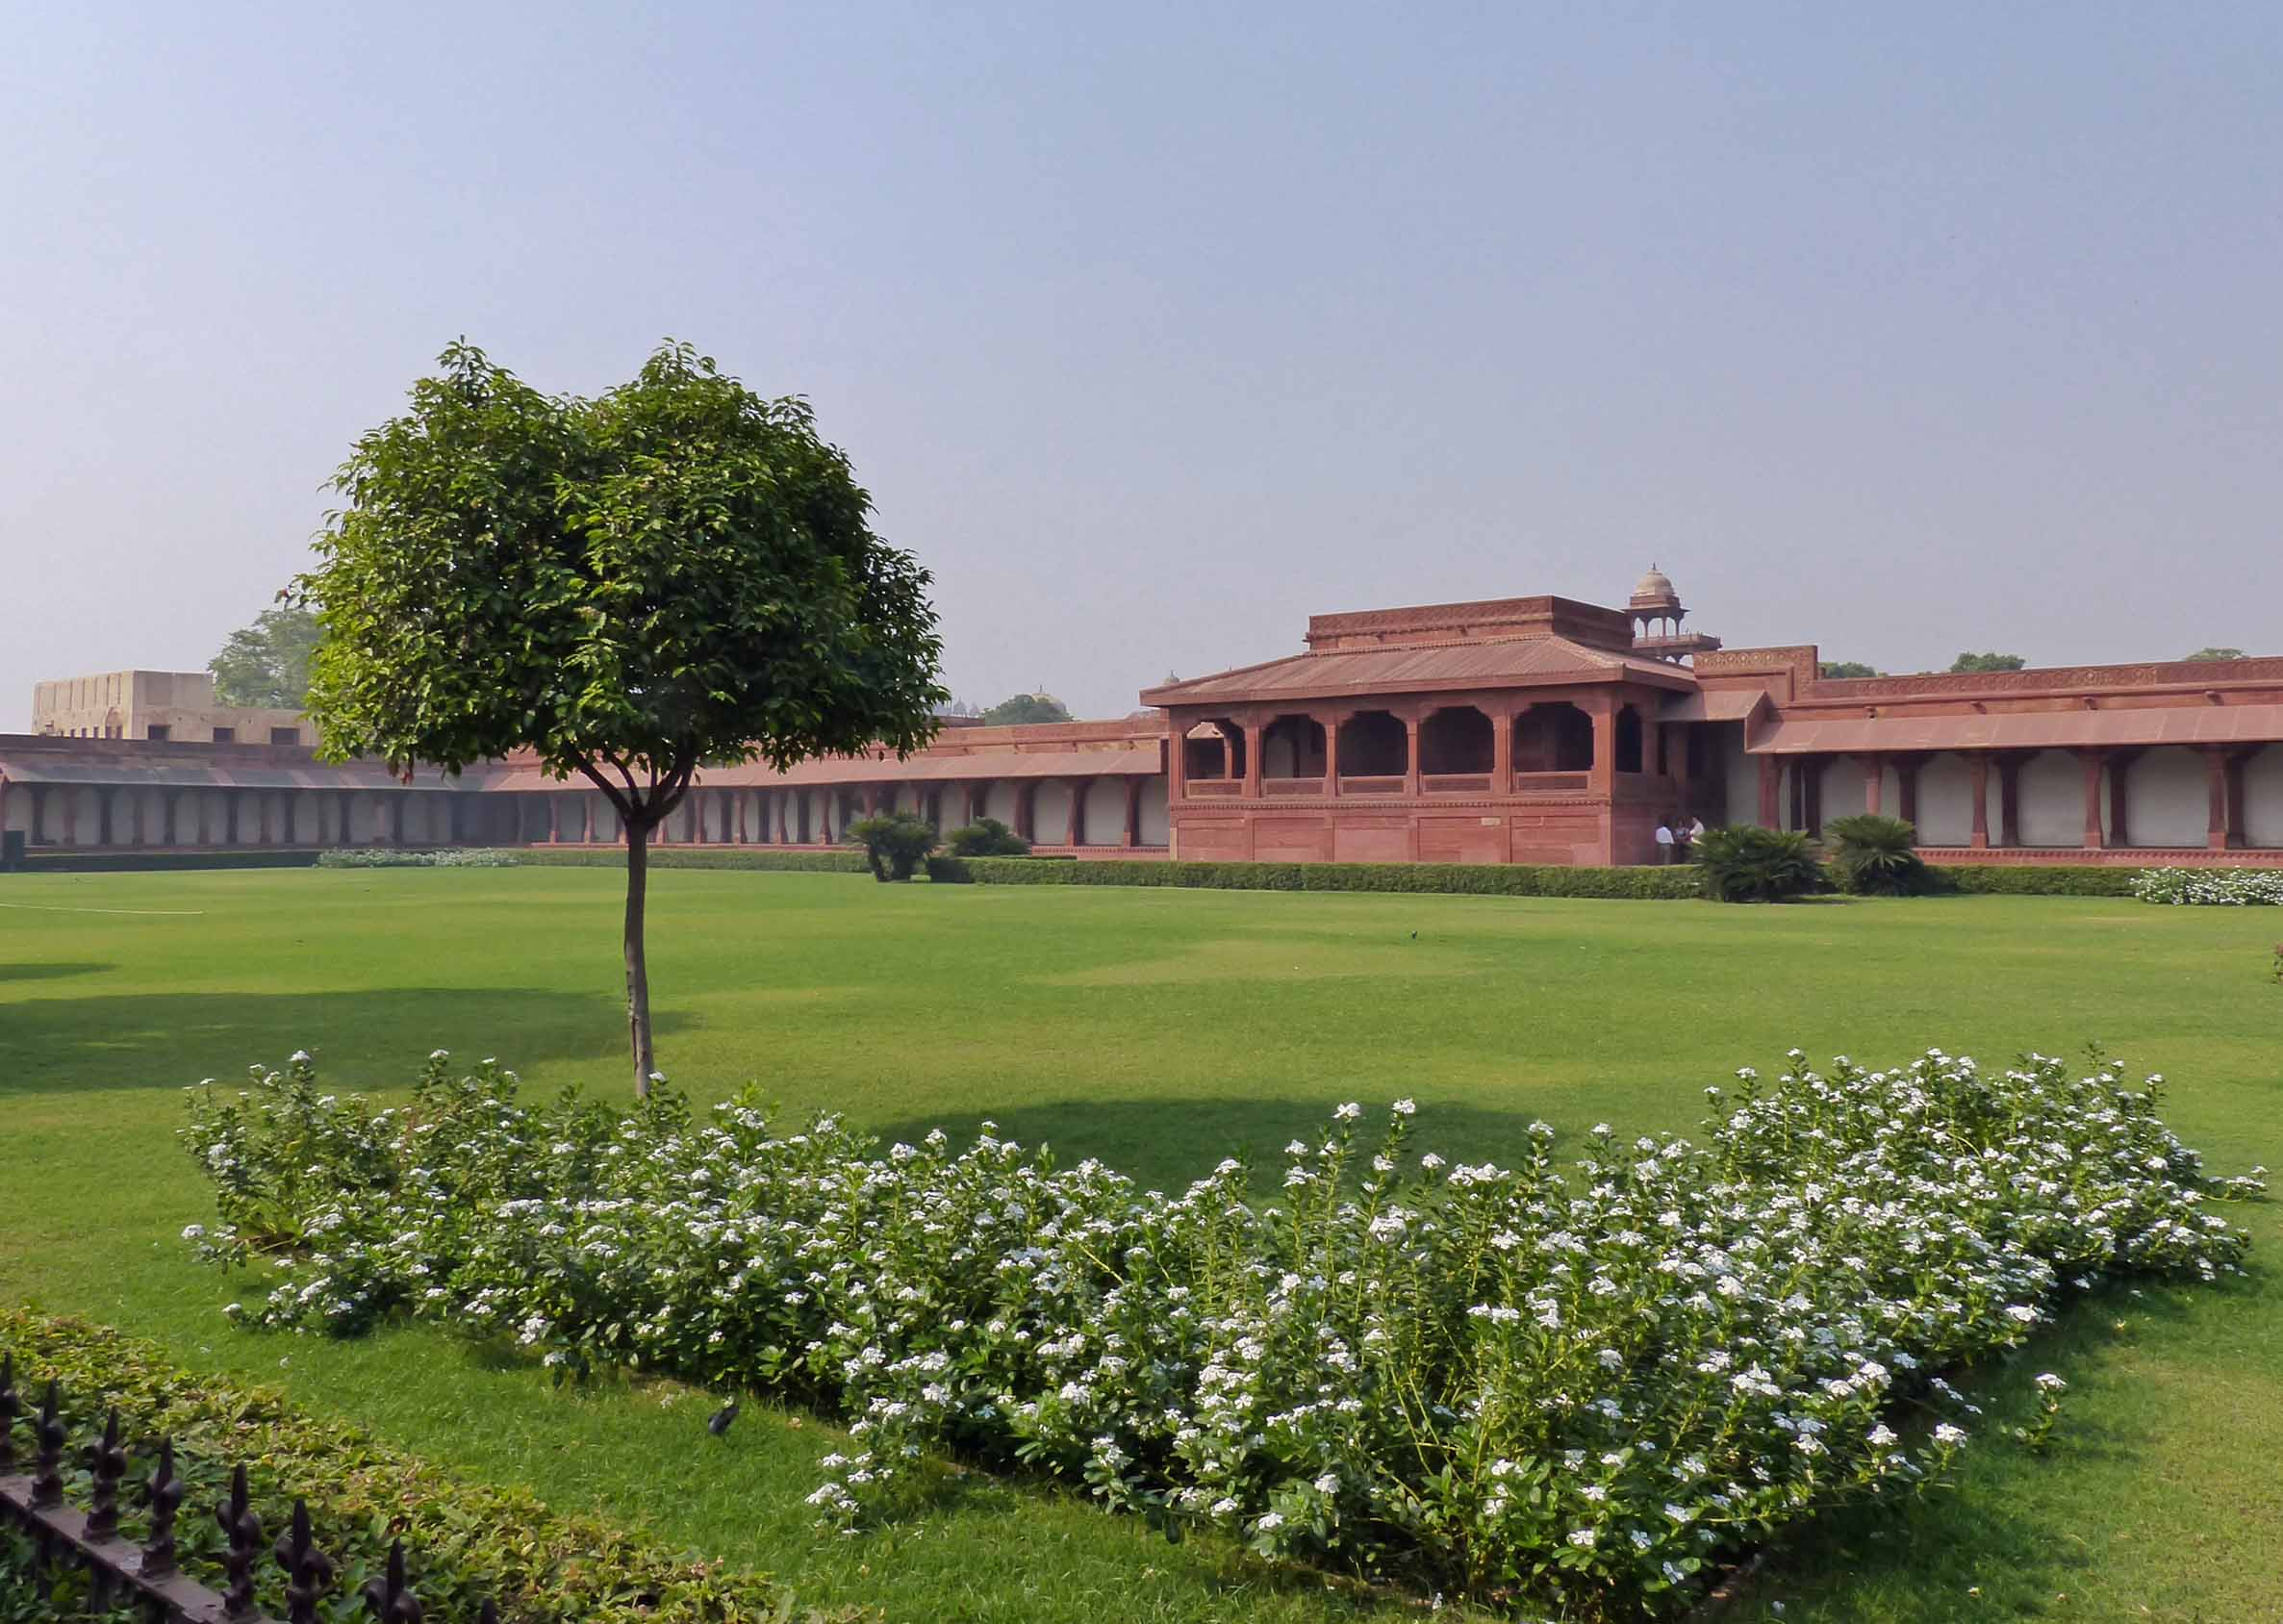 Red sandstone building on far side of large lawn